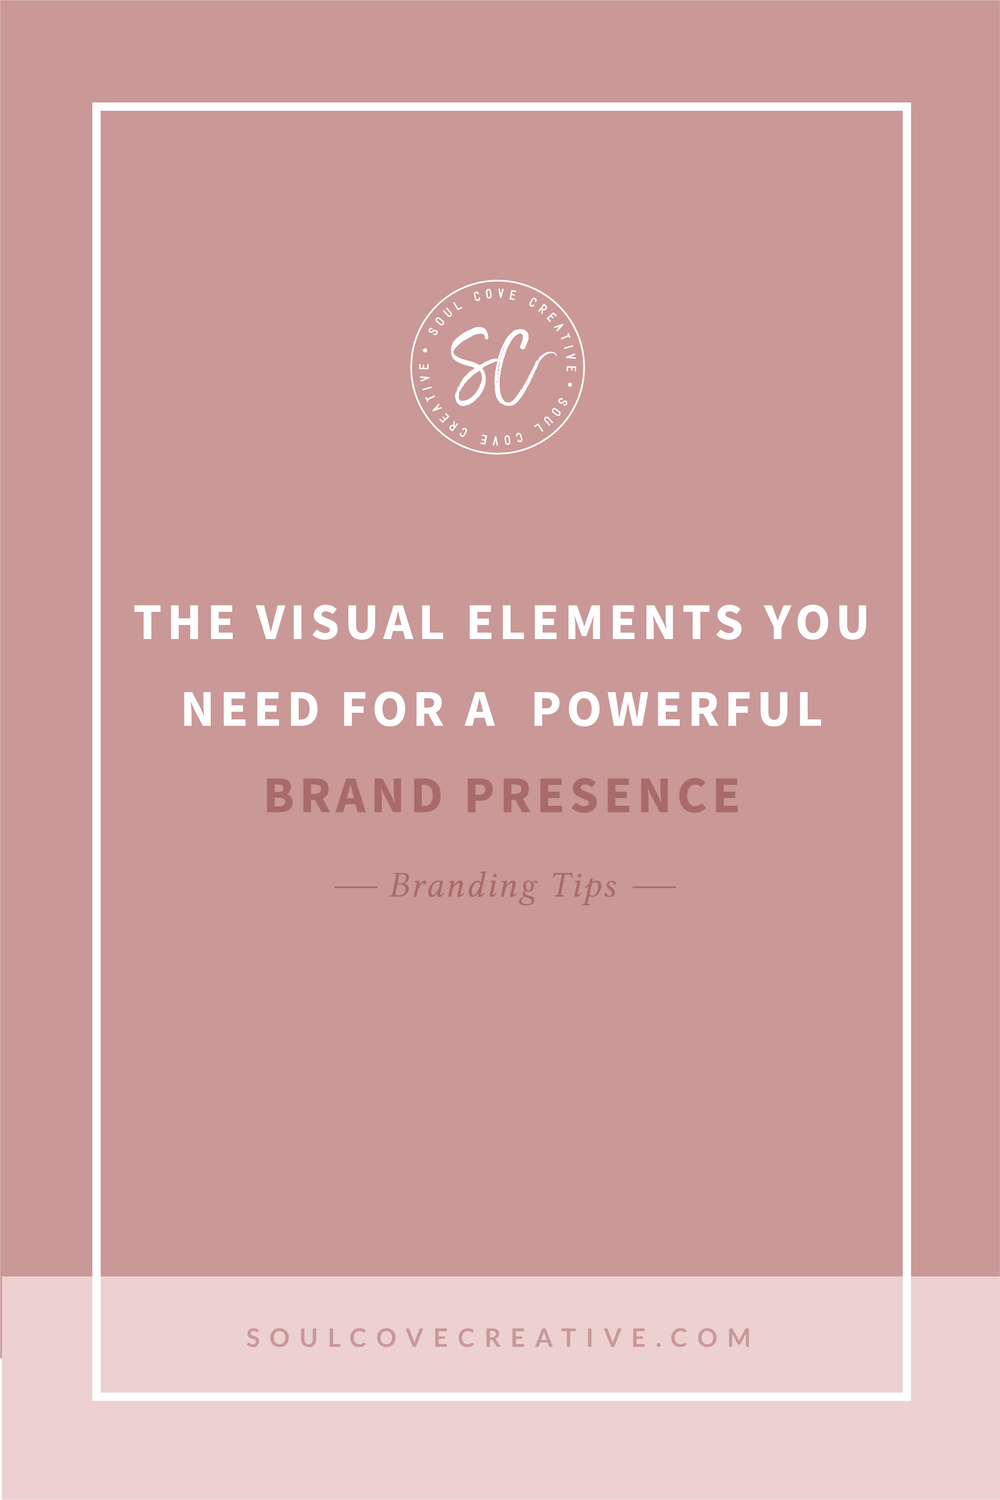 The Visual Elements you need for a Powerful Brand Presence